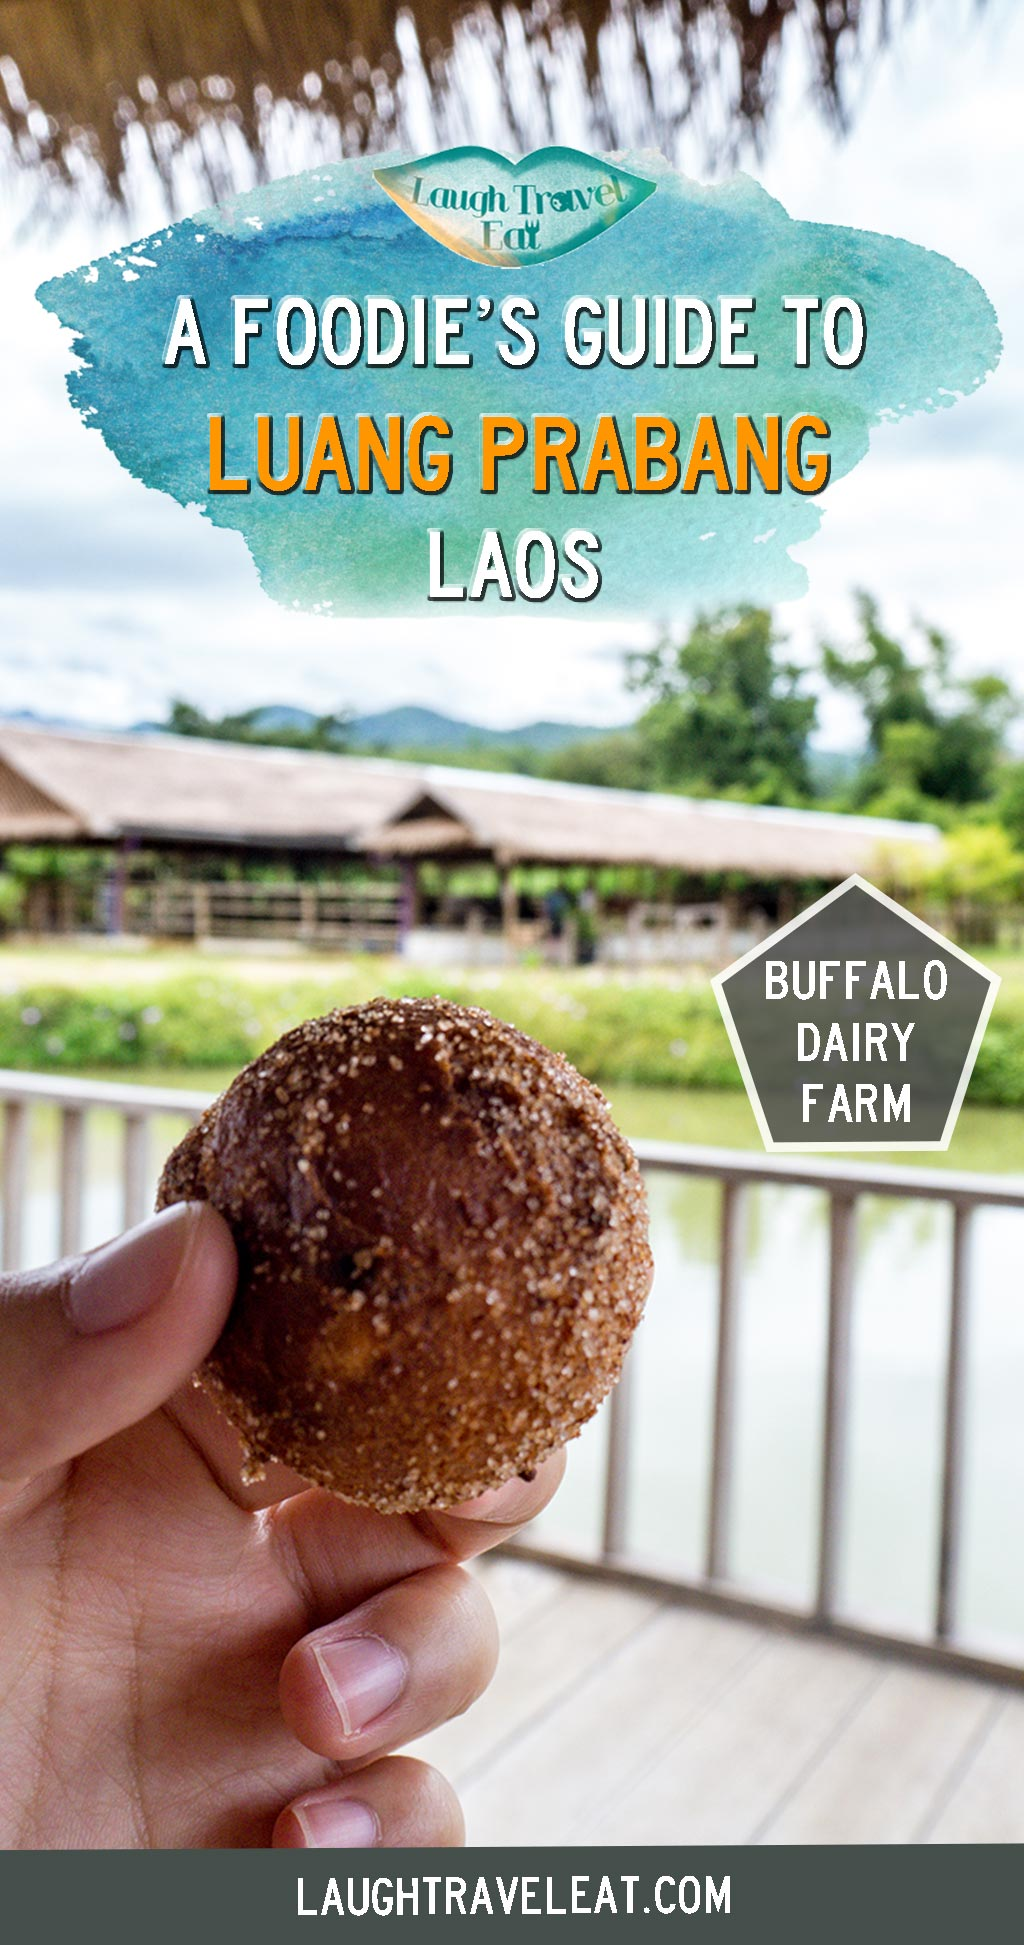 Luang Prabang is famous for its temples, but it has some pretty amazing food, too. Here's all you need to know: #luangprabang #food #laos